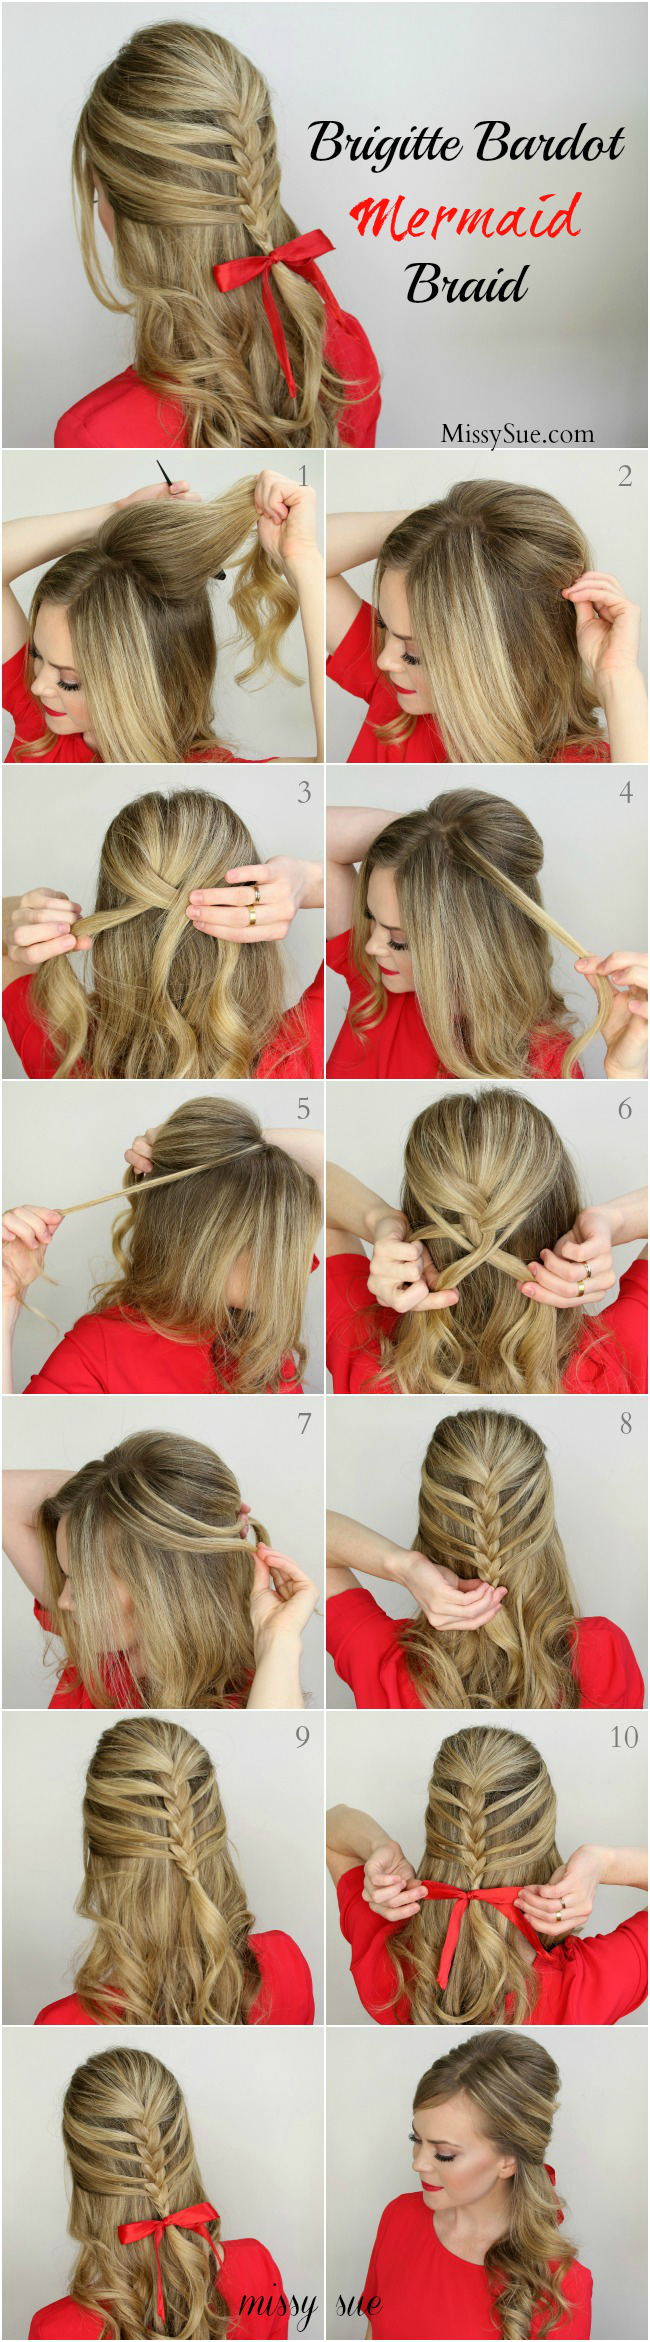 15 Spectacular Hairstyle Ideas For Perfect Christmas Holiday Hair Styles Mermaid Braid Pretty Hairstyles